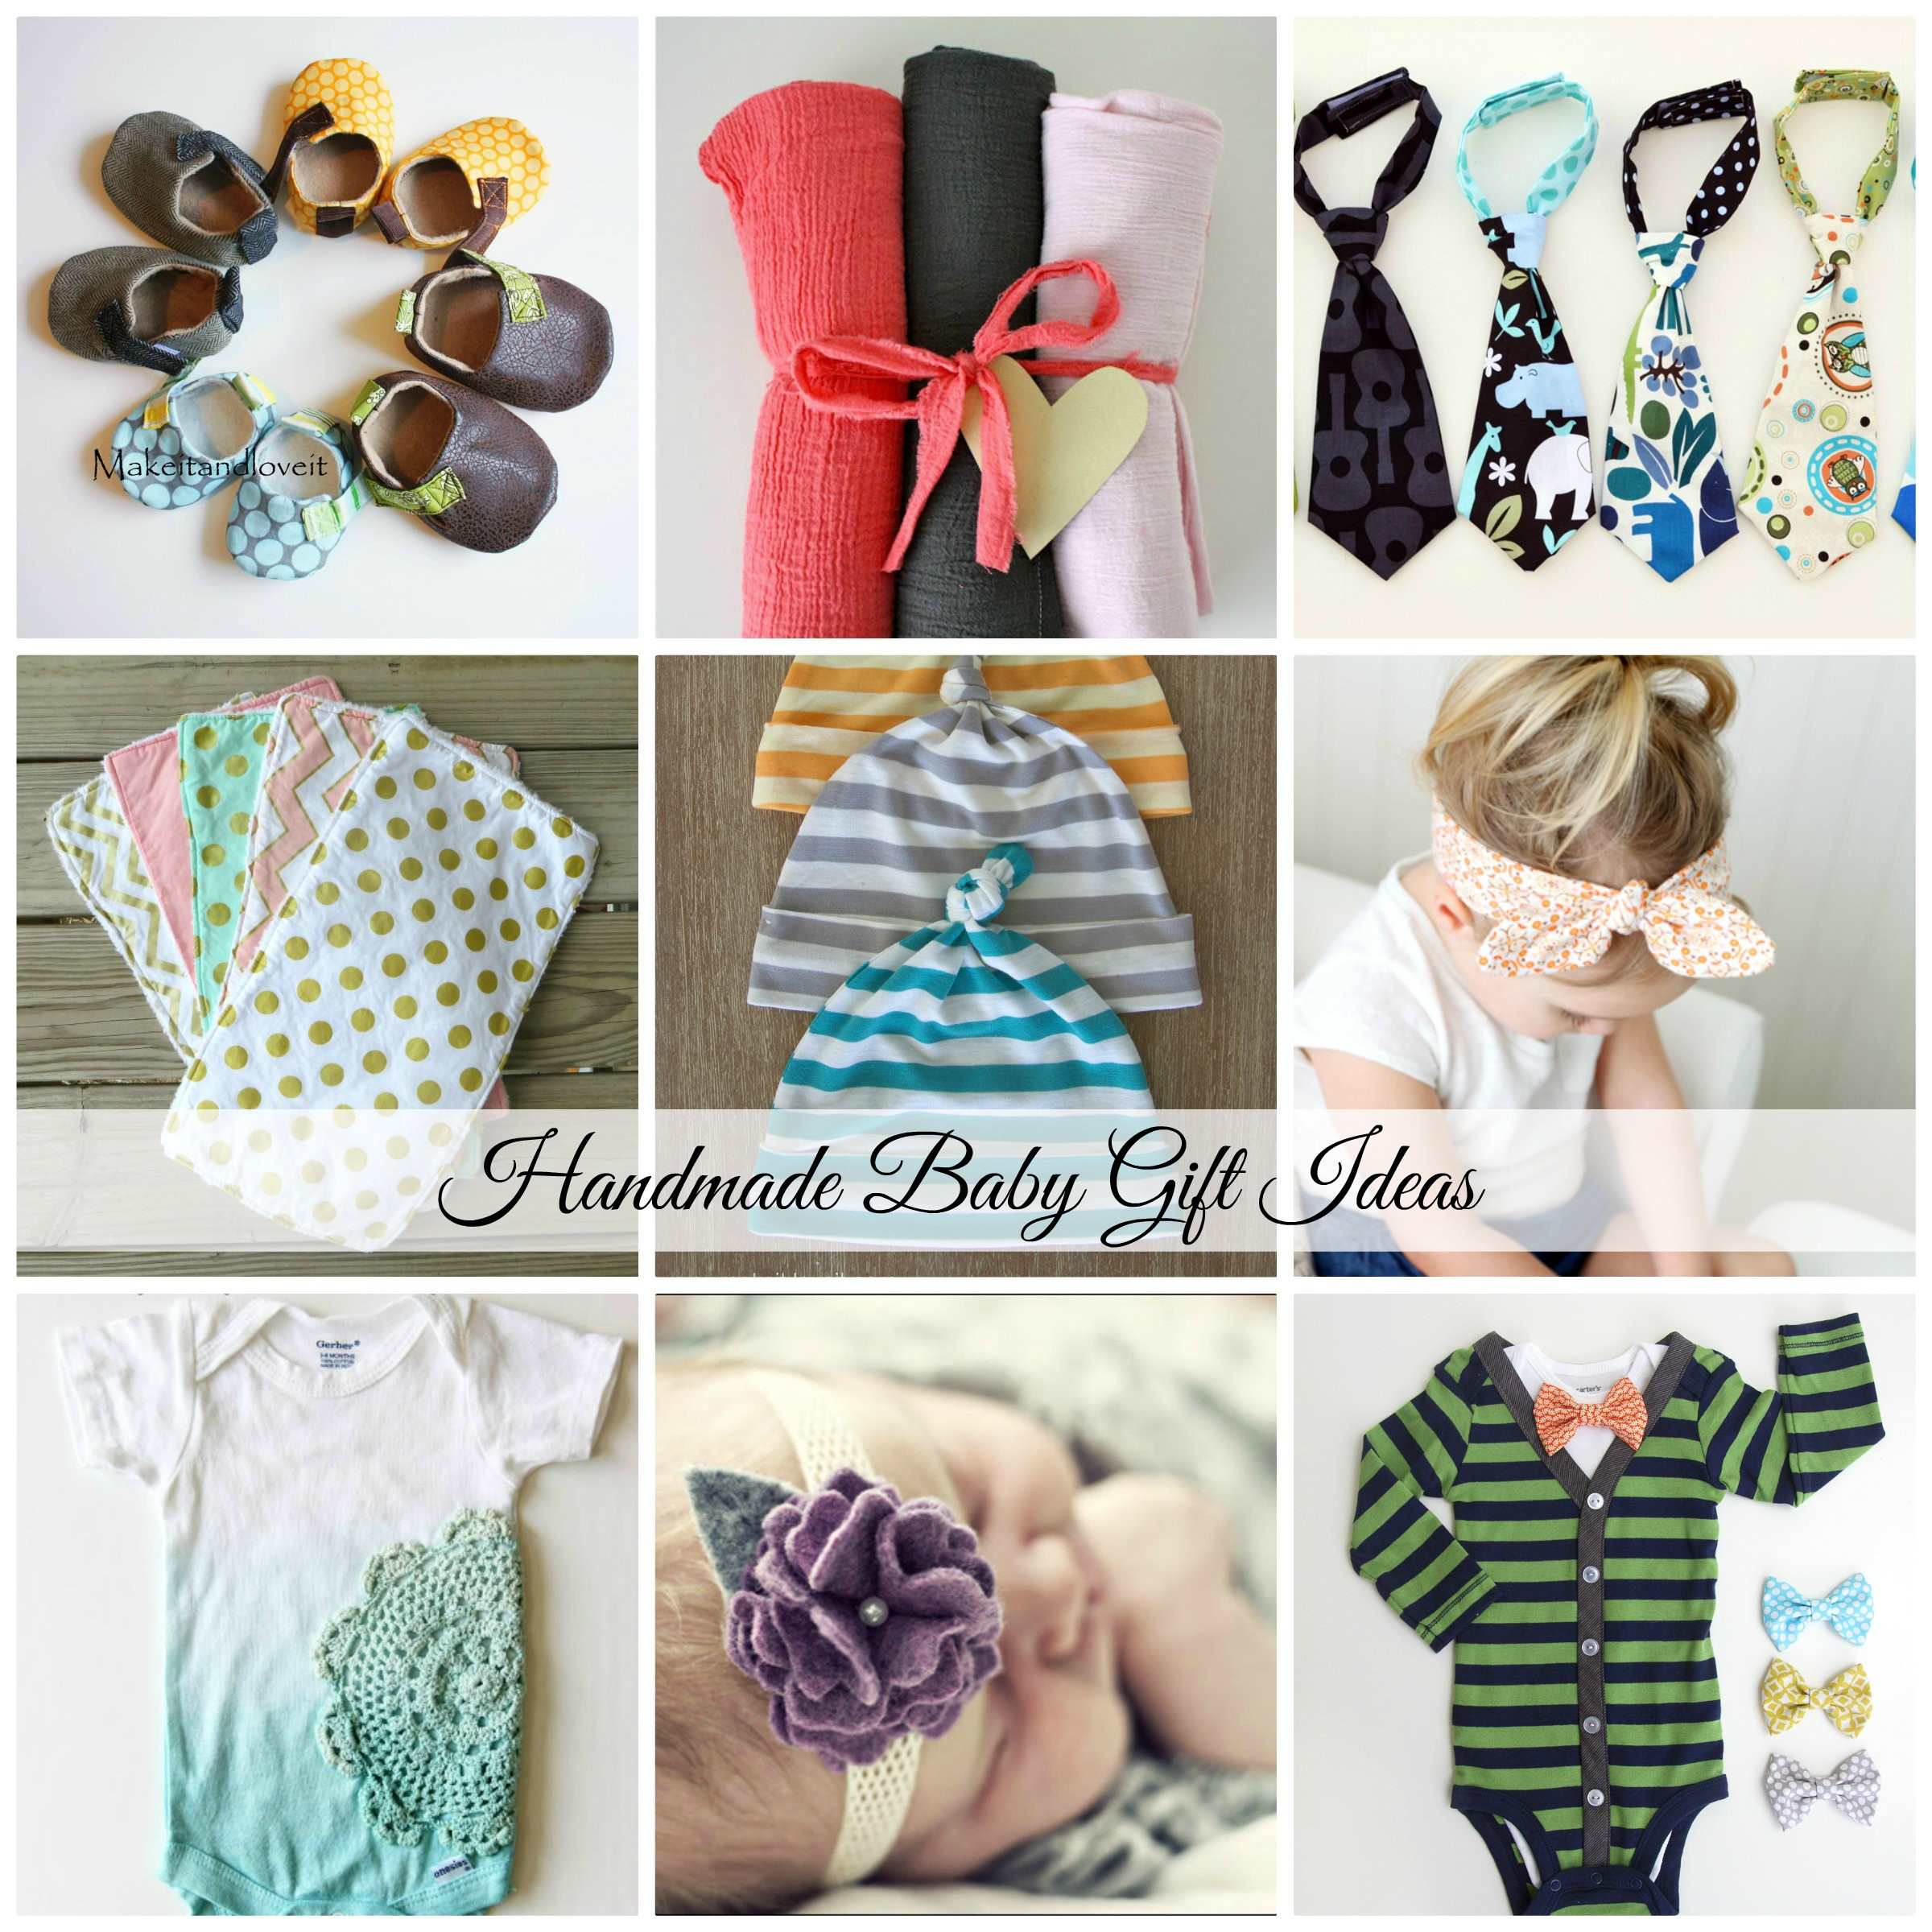 Best ideas about Homemade Baby Gift Ideas . Save or Pin Handmade Baby Gift Ideas Now.